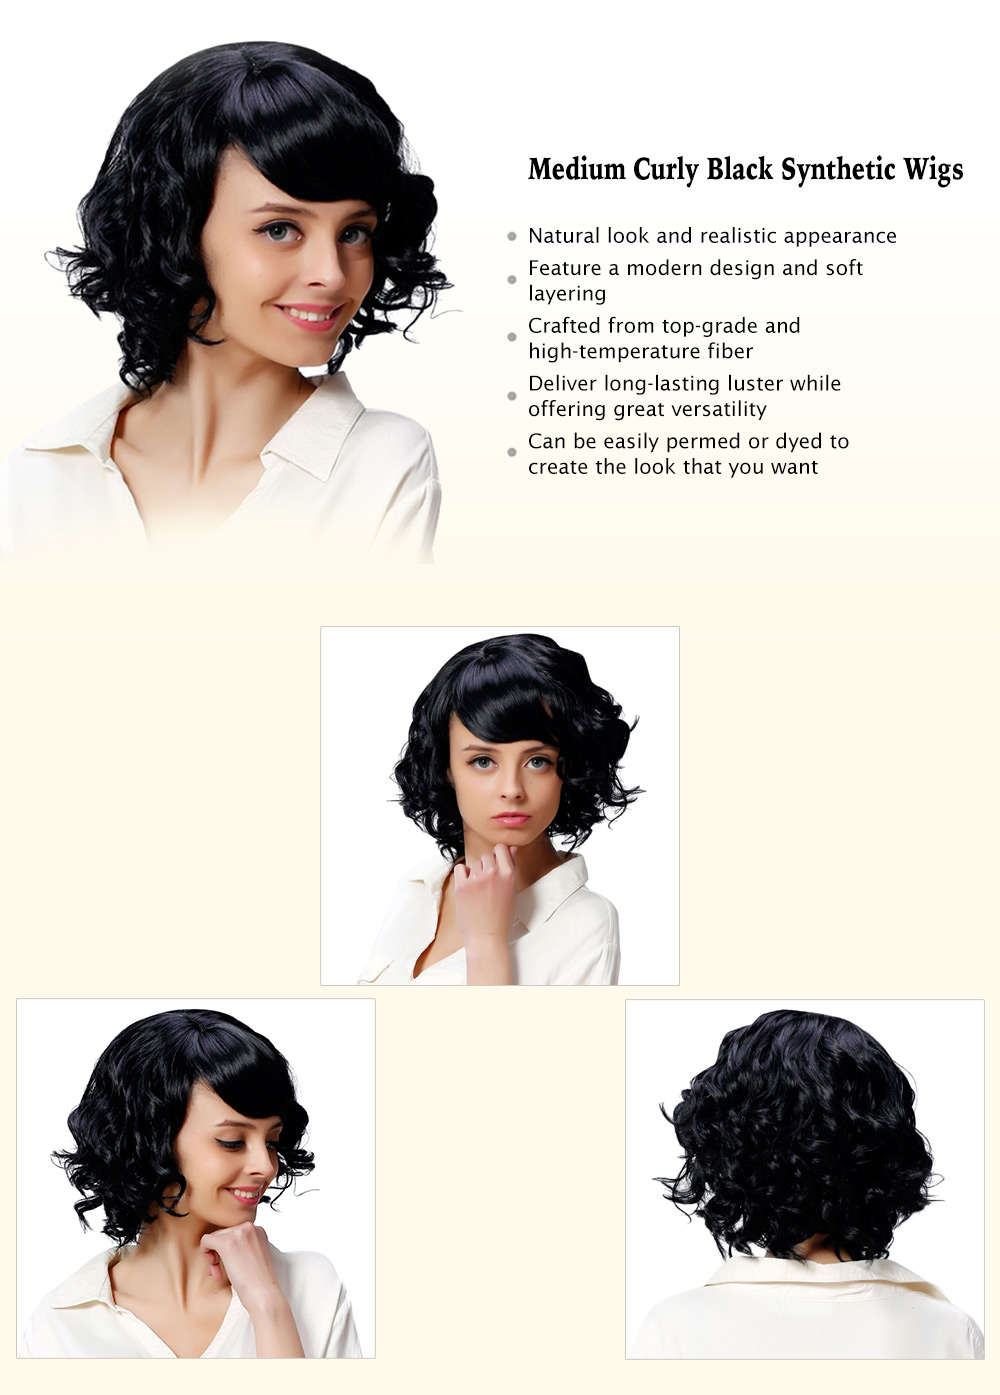 AISIHAIR Women Medium Curly Black Synthetic Wigs with Side Bangs